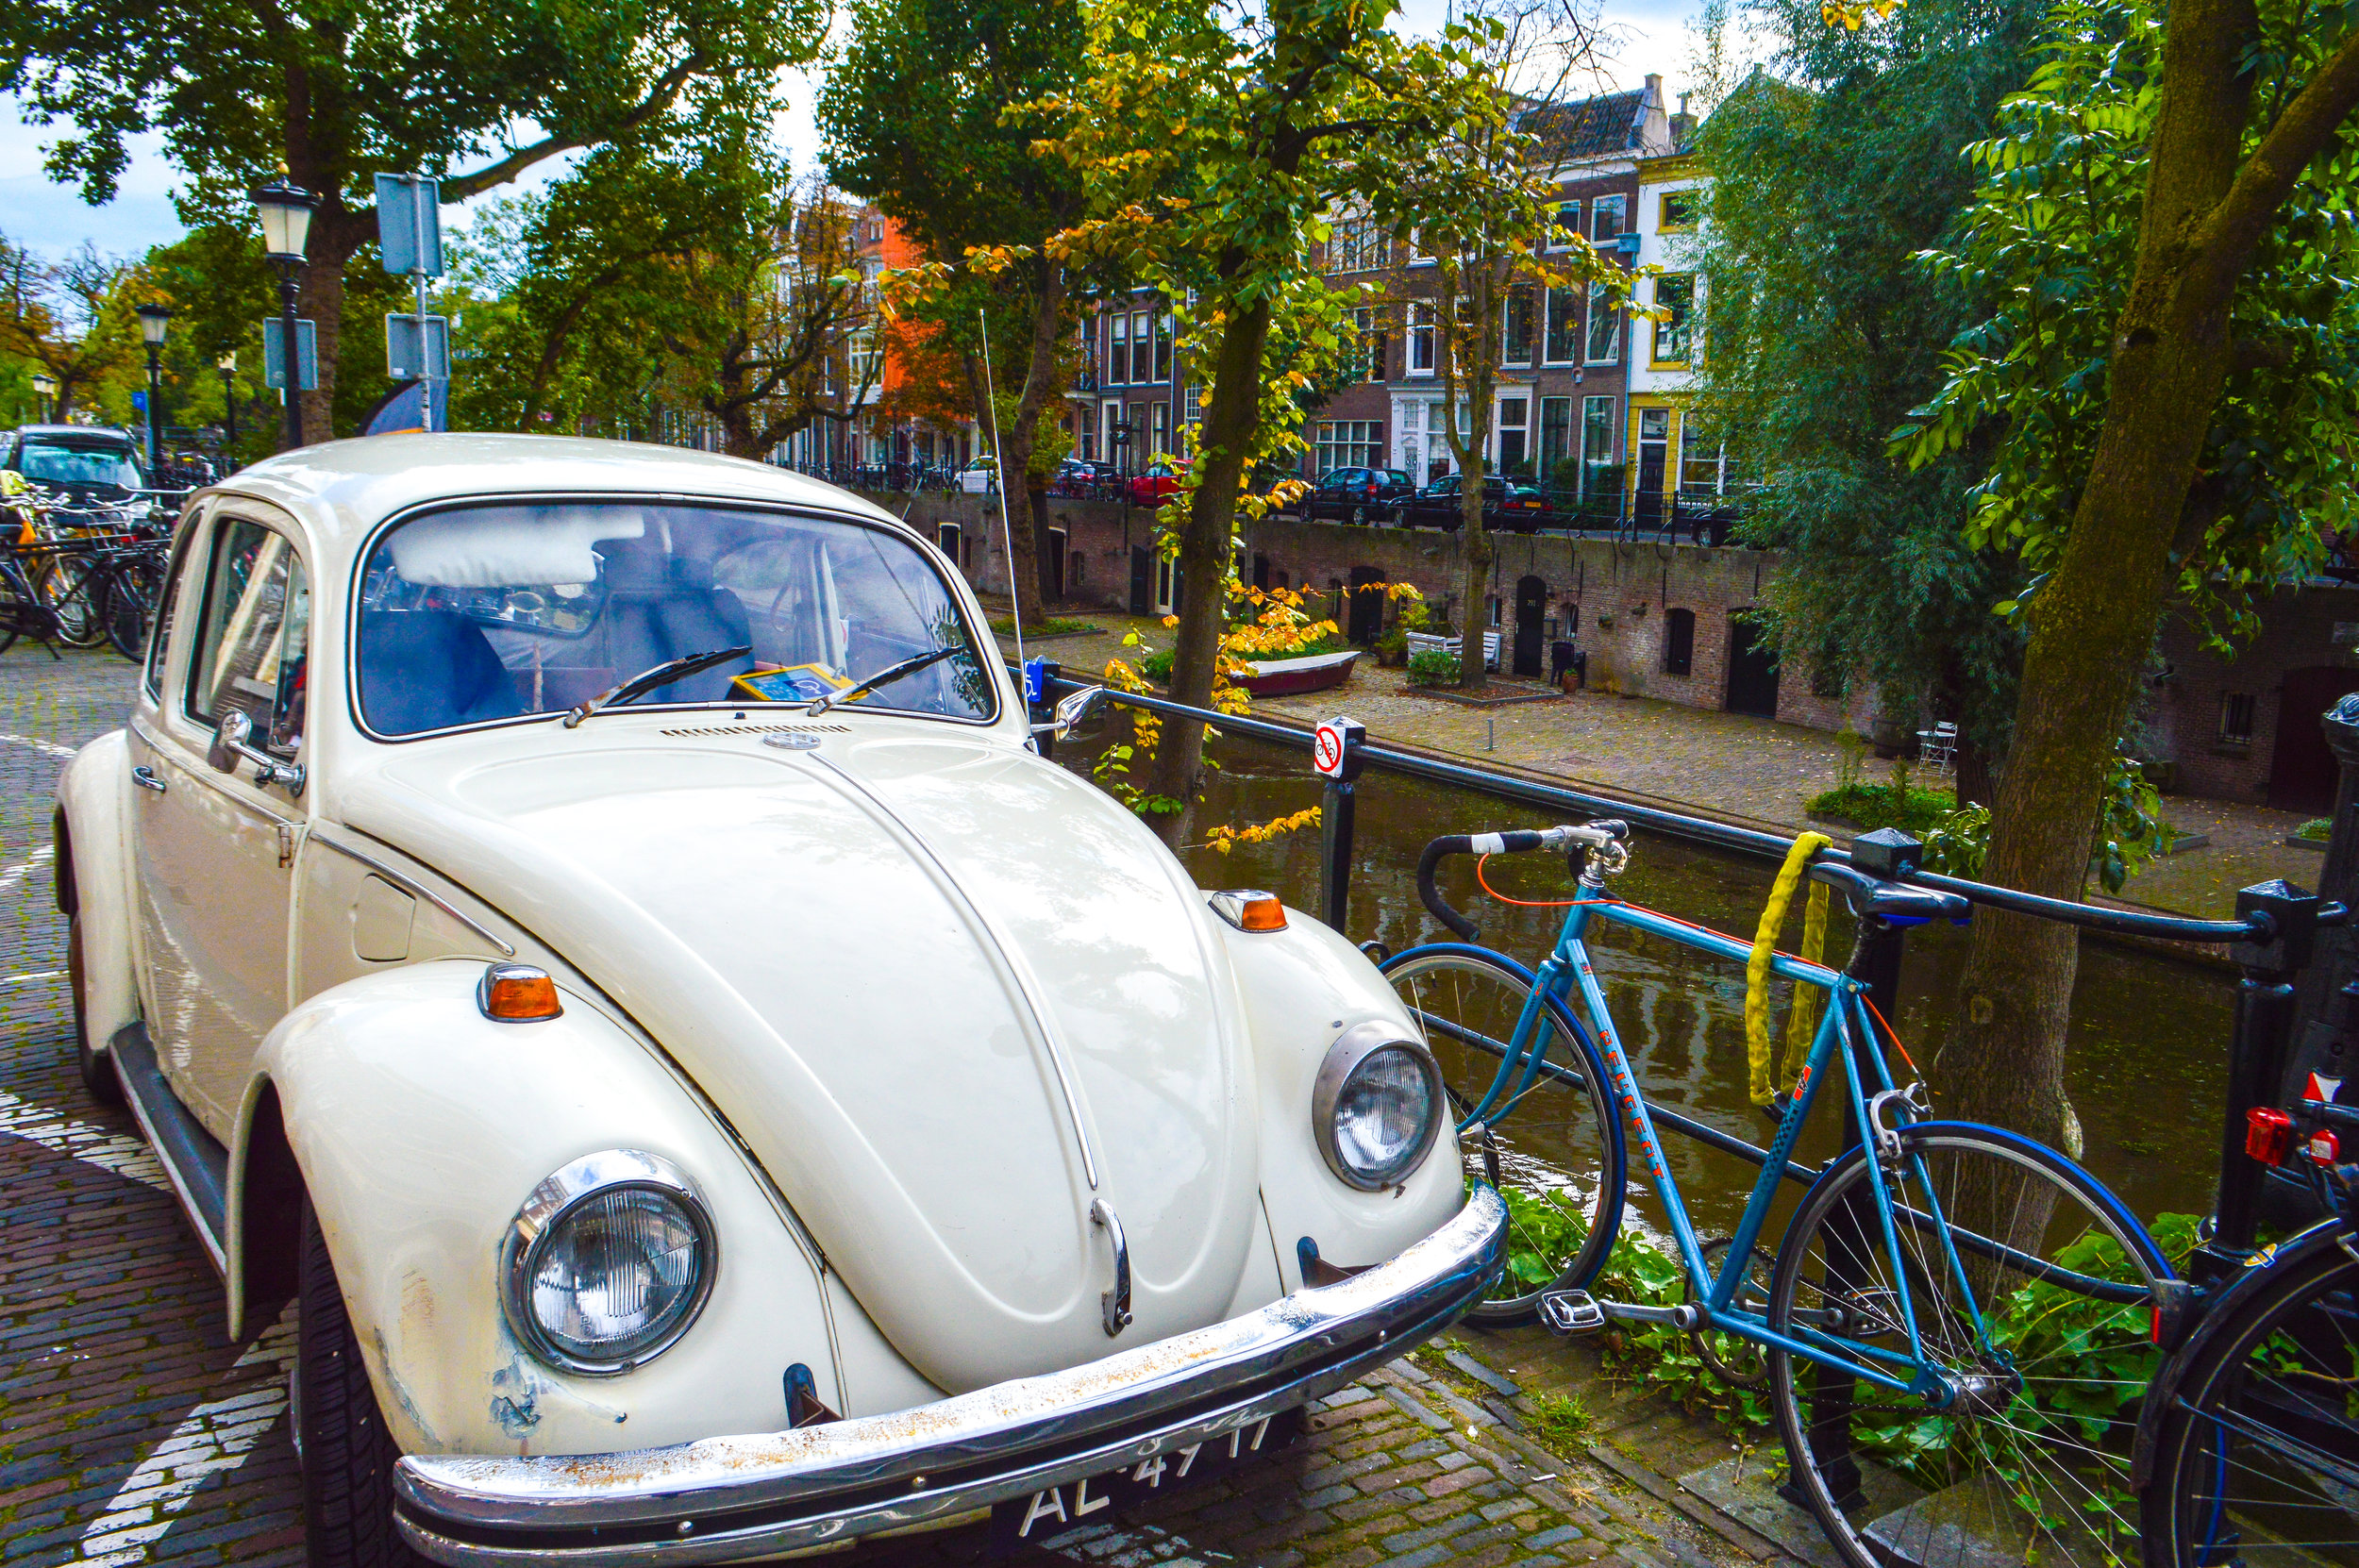 Vintage car next to Utrecht River